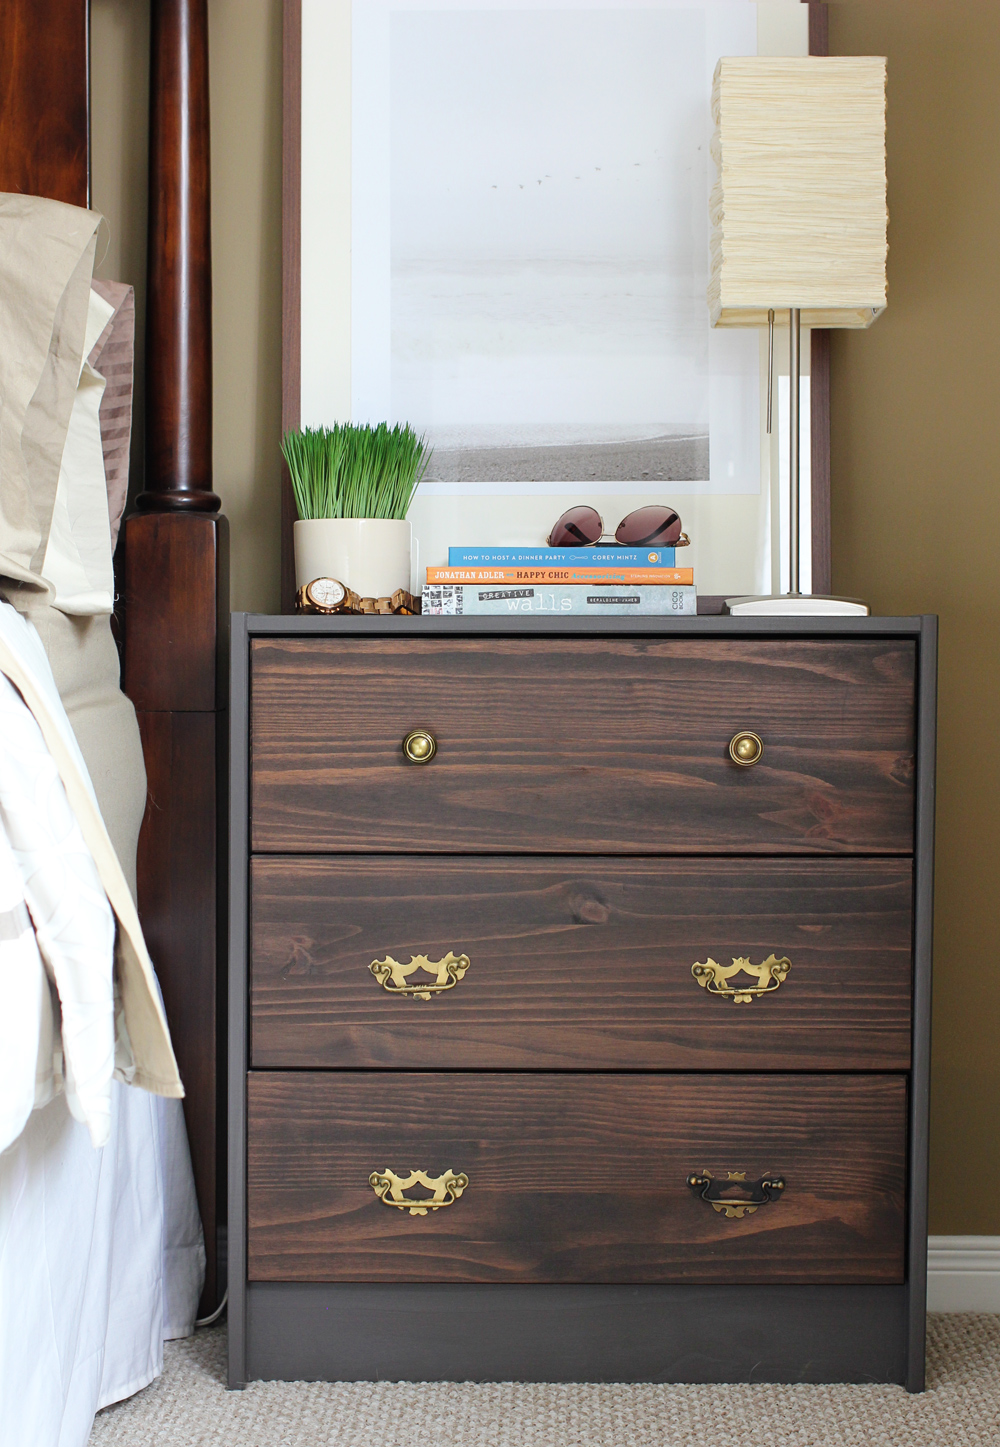 Ikea Rast Ikea Rast Nightstand Hack Brittany Stager